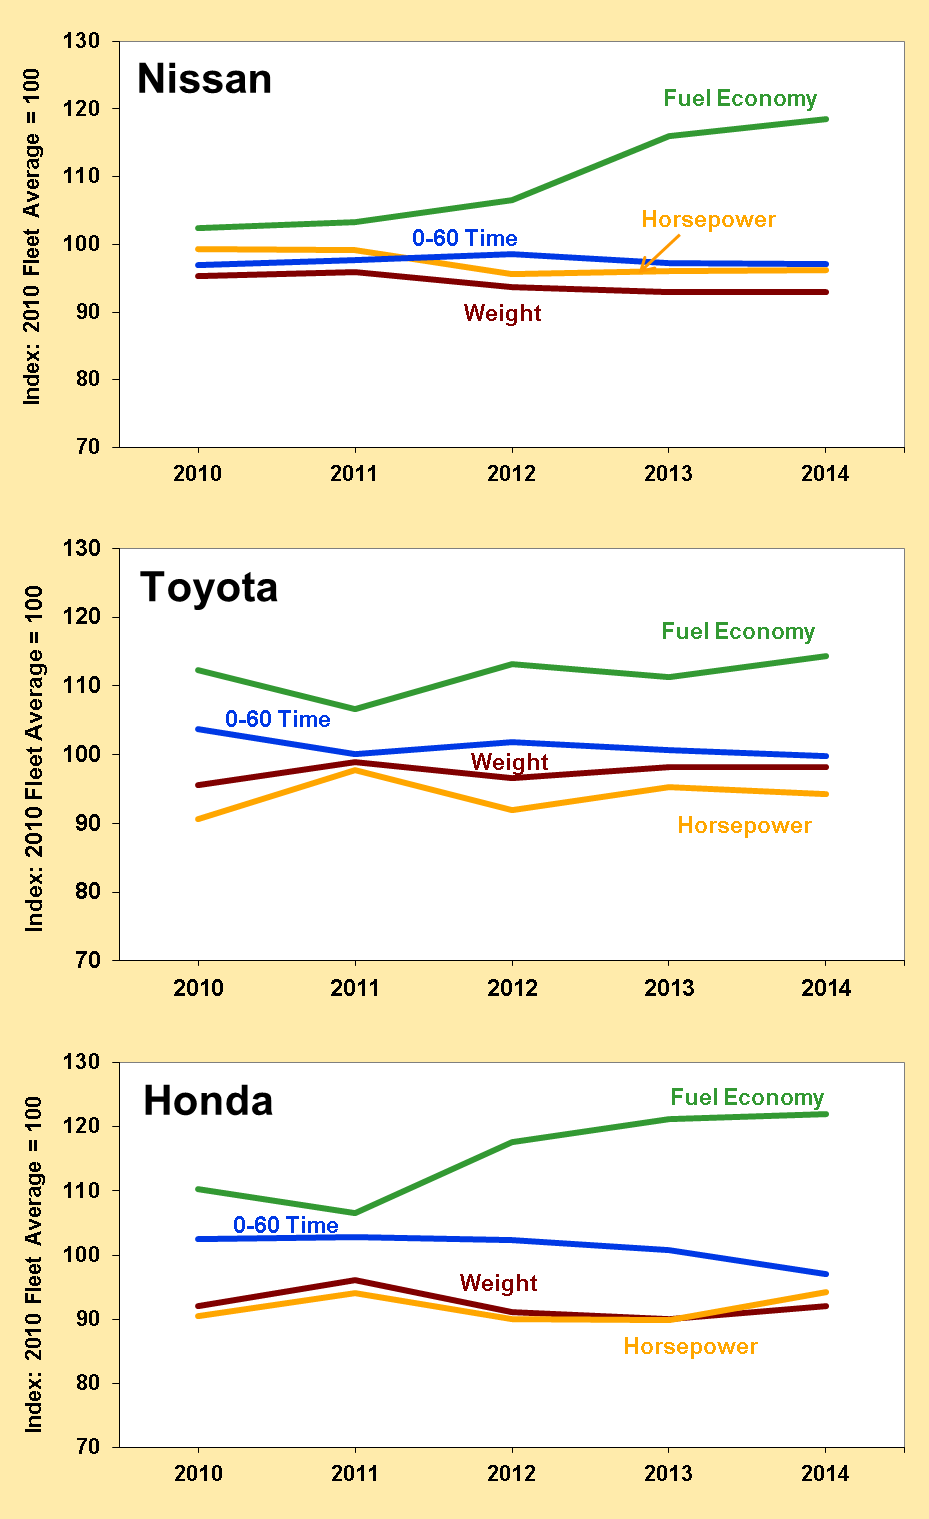 Fuel Economy above Fleet Average and Weight below or Equal to Fleet Average for Toyota, Honda and Nissan These sales-weighted averages show that the fuel economy of Toyota, Honda and Nissan has been